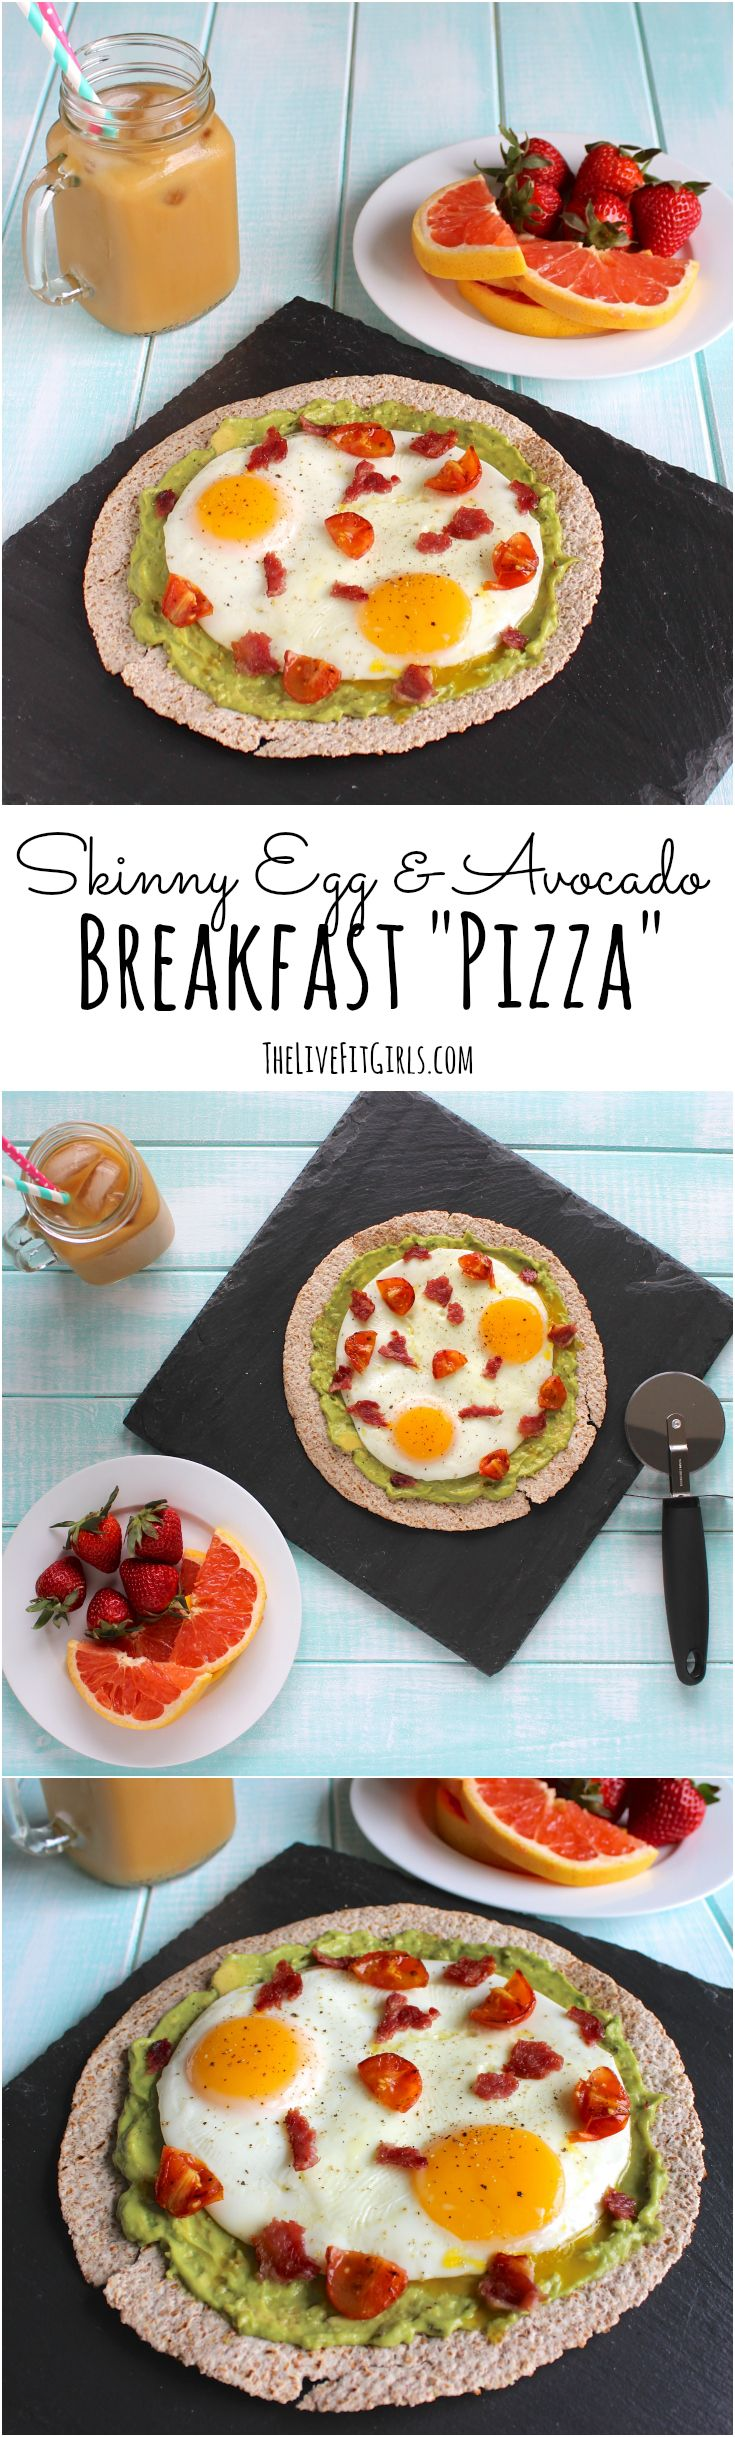 This Skinny Egg & Avocado Pizza is the PERFECT breakfast for busy mornings! Only takes 5 minutes!